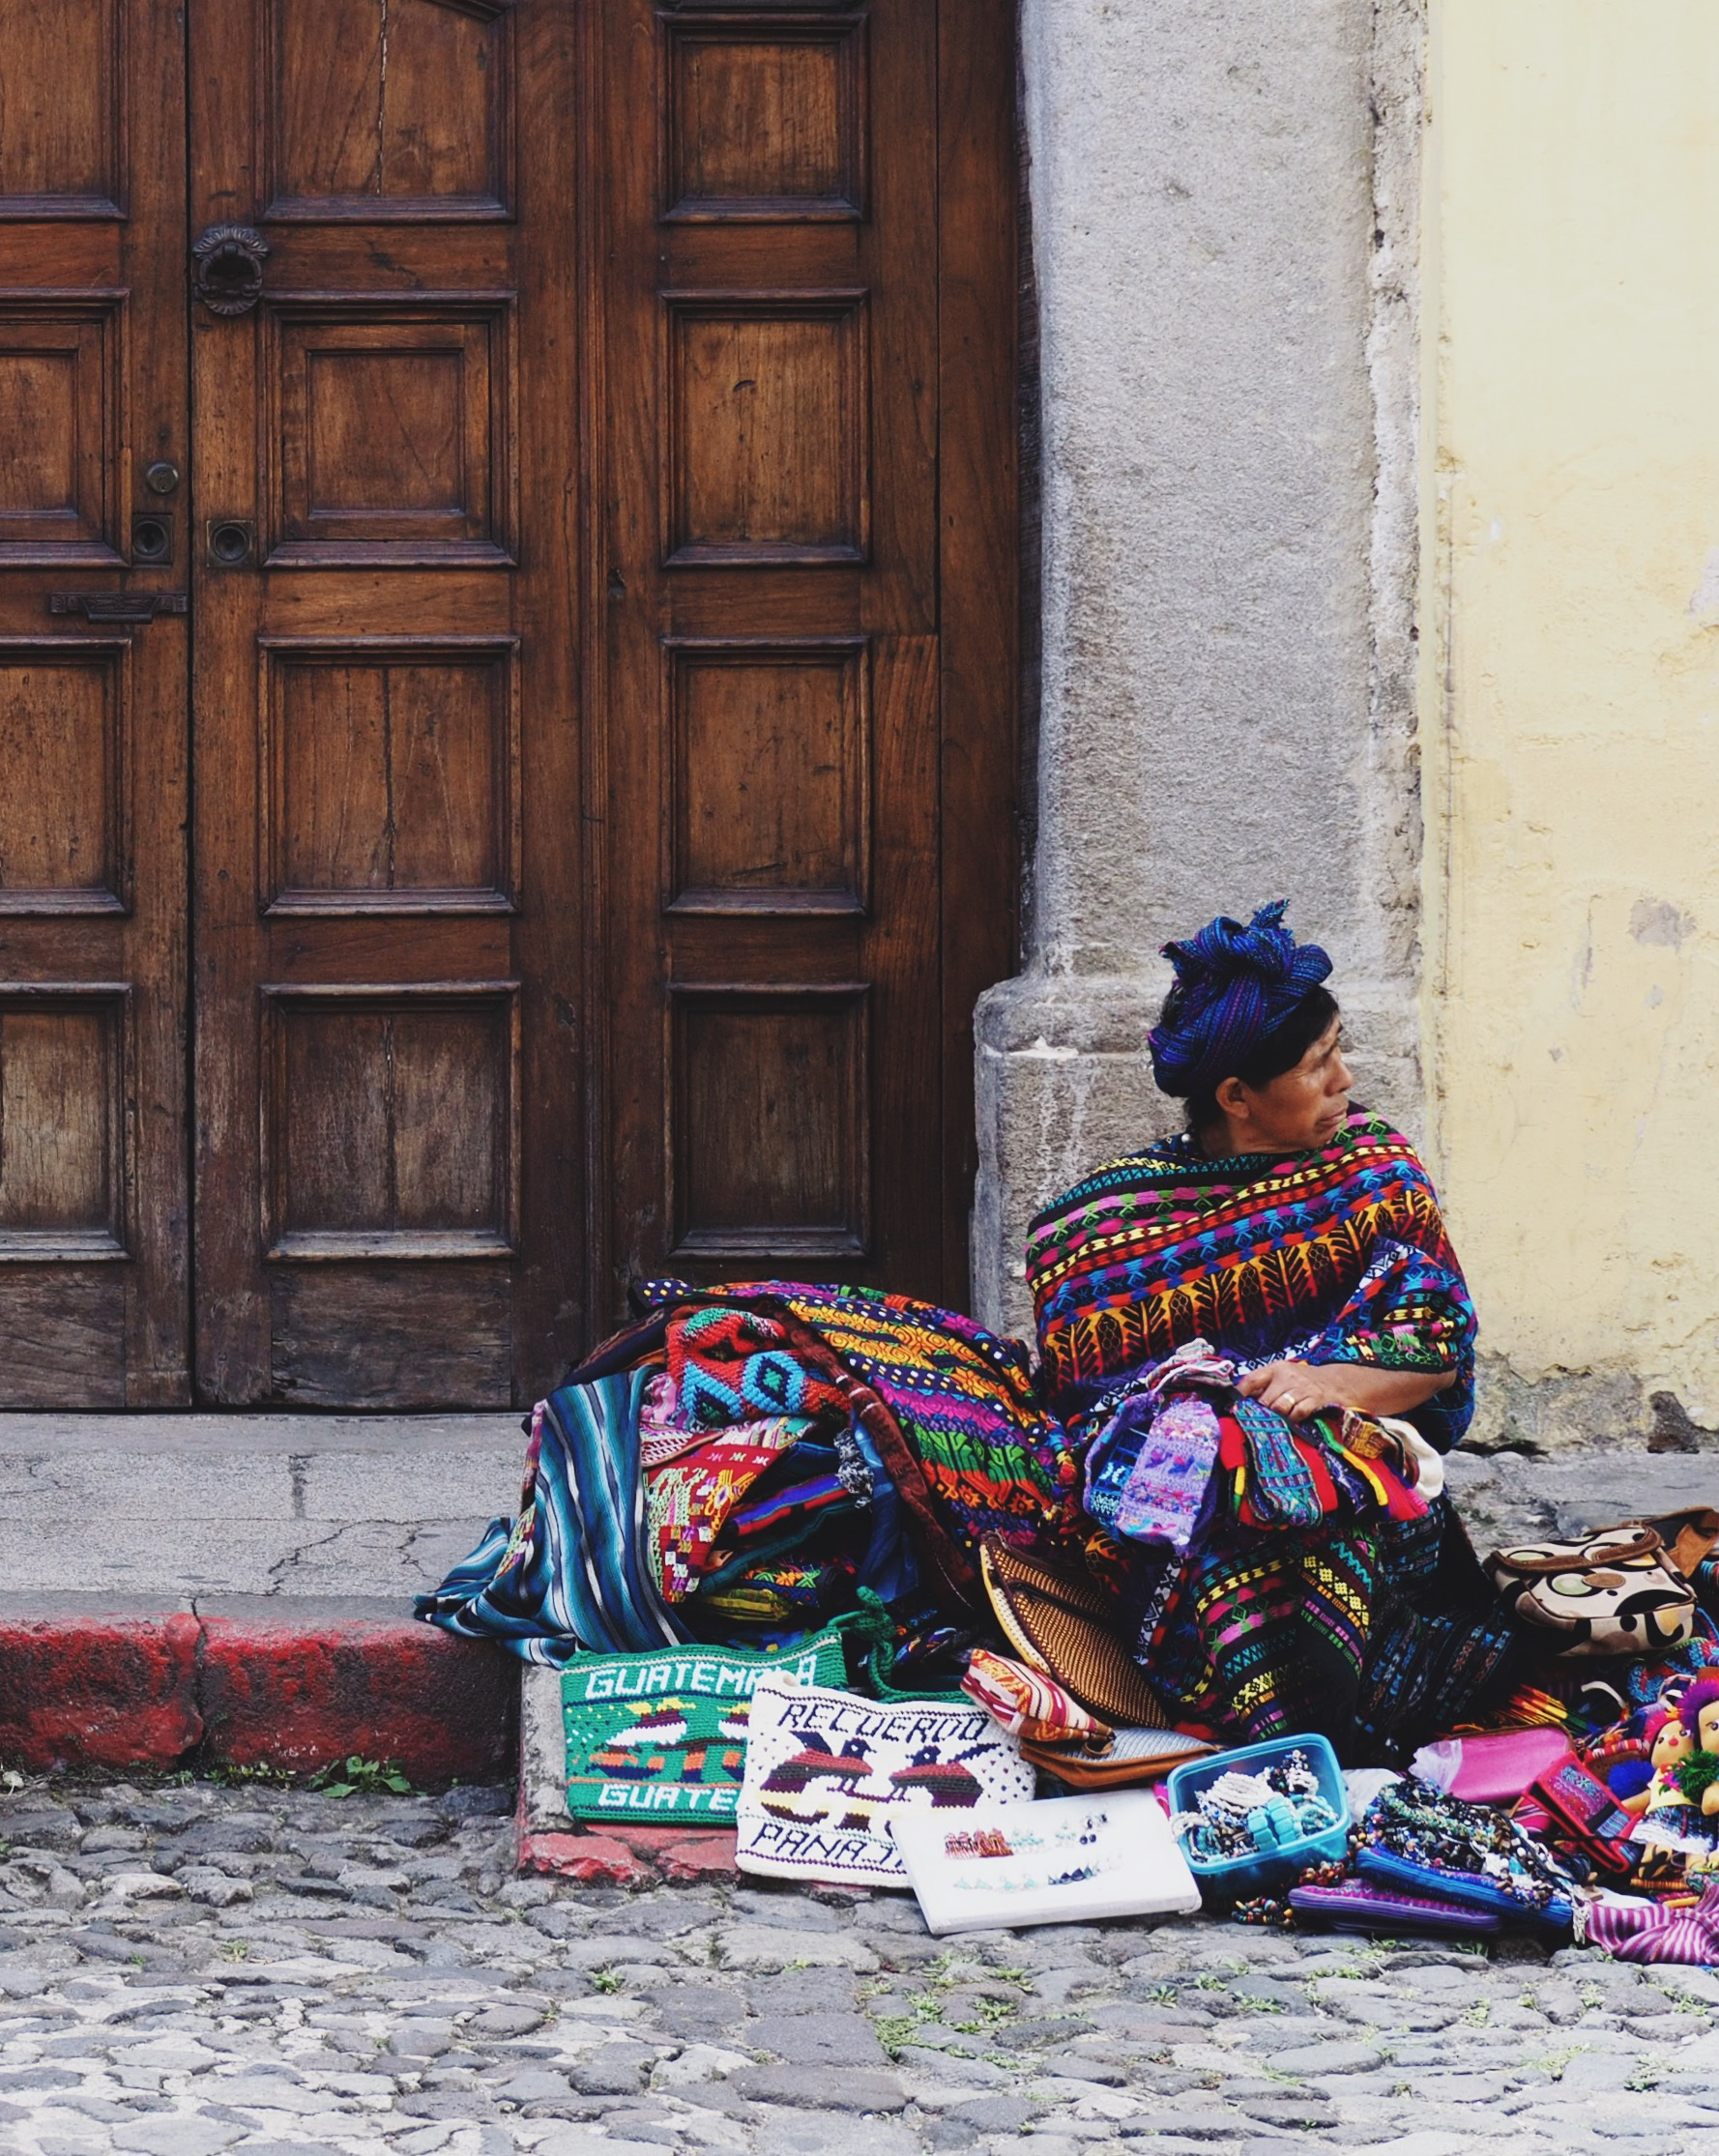 Met a nice Mayan woman selling textile souvenirs to tourists